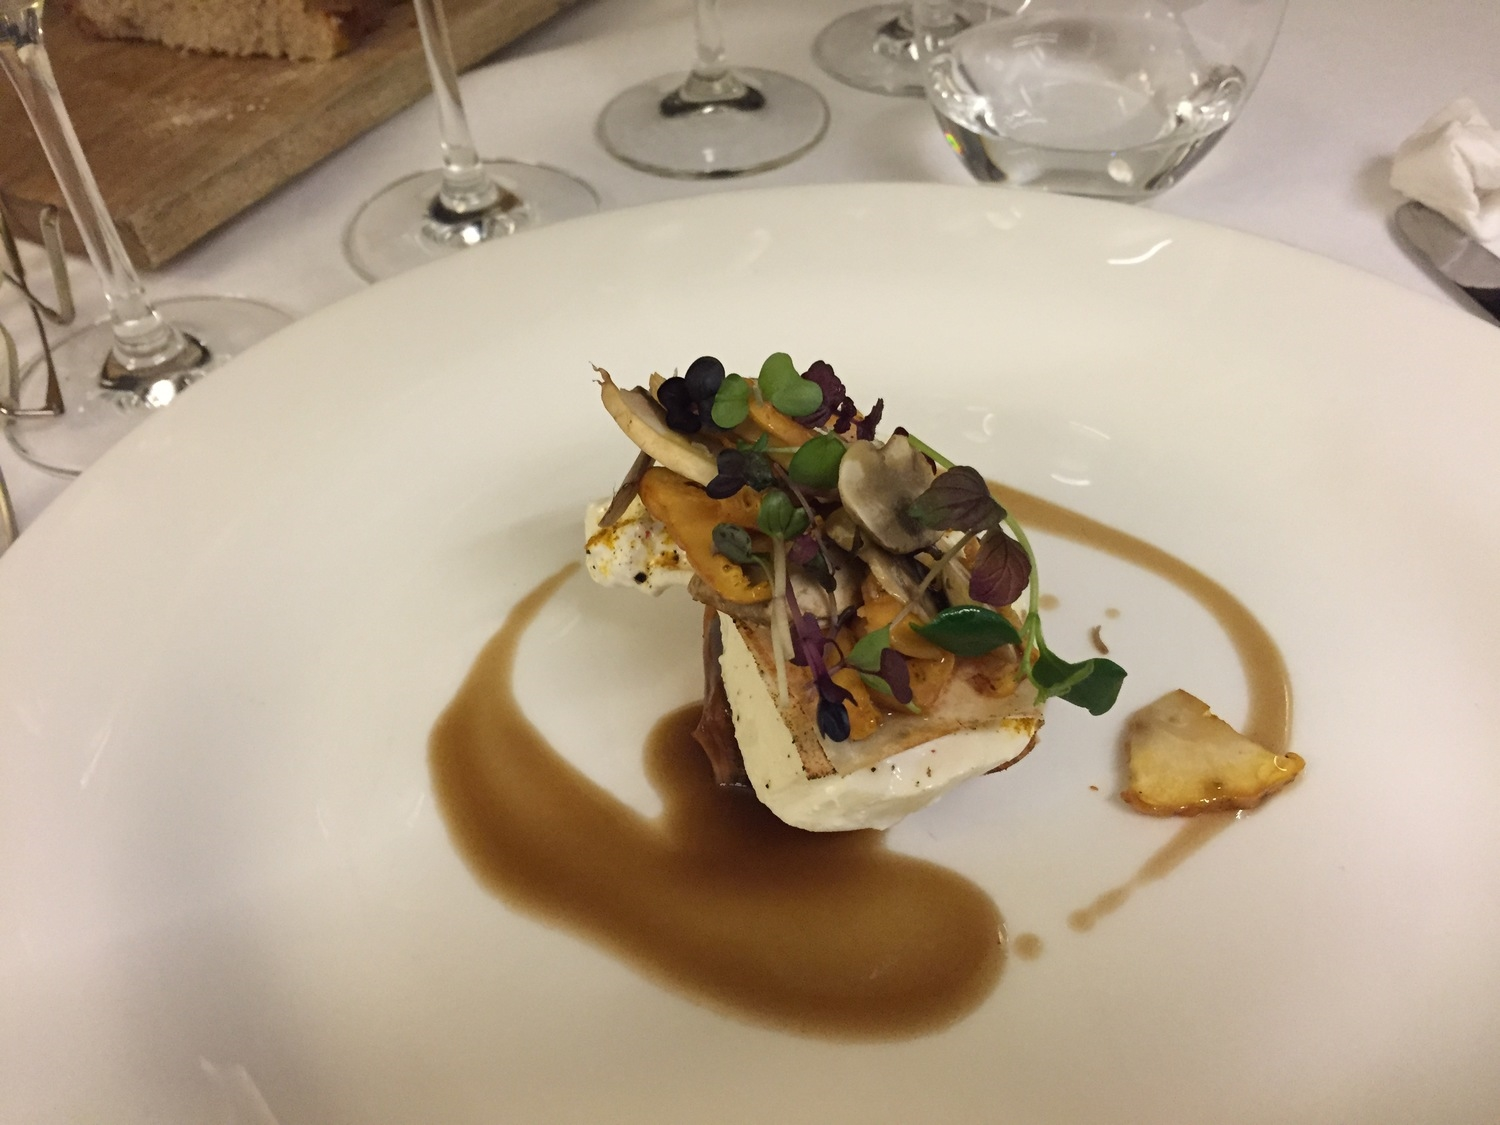 Milhojas (Thousand Layer Puff Pastry) with Burrata and Mushrooms